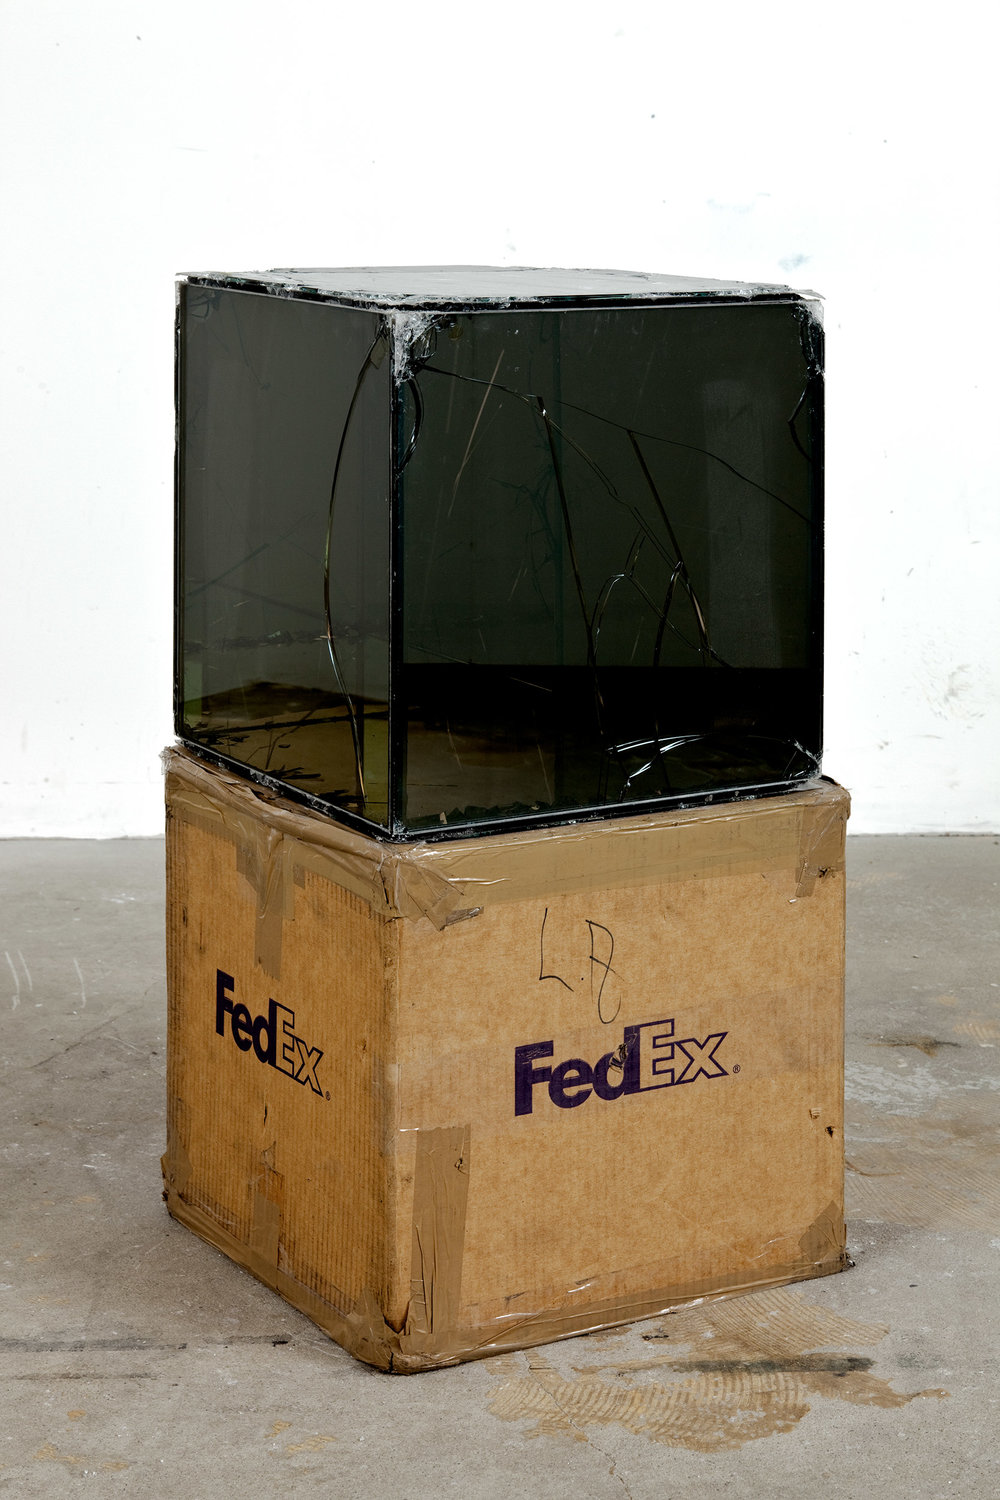 FedEx® Kraft Box  © 2005 FEDEX 330504 10/05 SSCC, Priority Overnight, Los Angeles–Miami trk#865344981314, October 29–30, 2008, Priority Overnight, Miami–Los Angeles trk#861049125089, November 17–18, 2008, Priority Overnight, Los Angeles-Miami Beach trk#860147611241, December 01–02, 2008, Priority Overnight, Miami–Los Angeles trk#867525901310, December 08–09, 2008, Priority Overnight, Los Angeles–Ann Arbor trk#867525901228, March 09–10, 2009, Standard Overnight, Ann Arbor–Los Angeles trk#868274625705, July 09–10, 2009, Standard Overnight, Los Angeles–San Francisco trk#870069766460, August 27–28, 2009, Standard Overnight, San Francisco–Los Angeles trk#870342520112, November 12–13, 2009   2008  Laminated Mirropane, FedEx shipping box, accrued FedEx shipping and tracking labels, silicone, metal, and tape  16 x 16 x 16 inches   FedEx Glass Works, 2007–    Pulleys, Cogwheels, Mirrors, and Windows, 2009